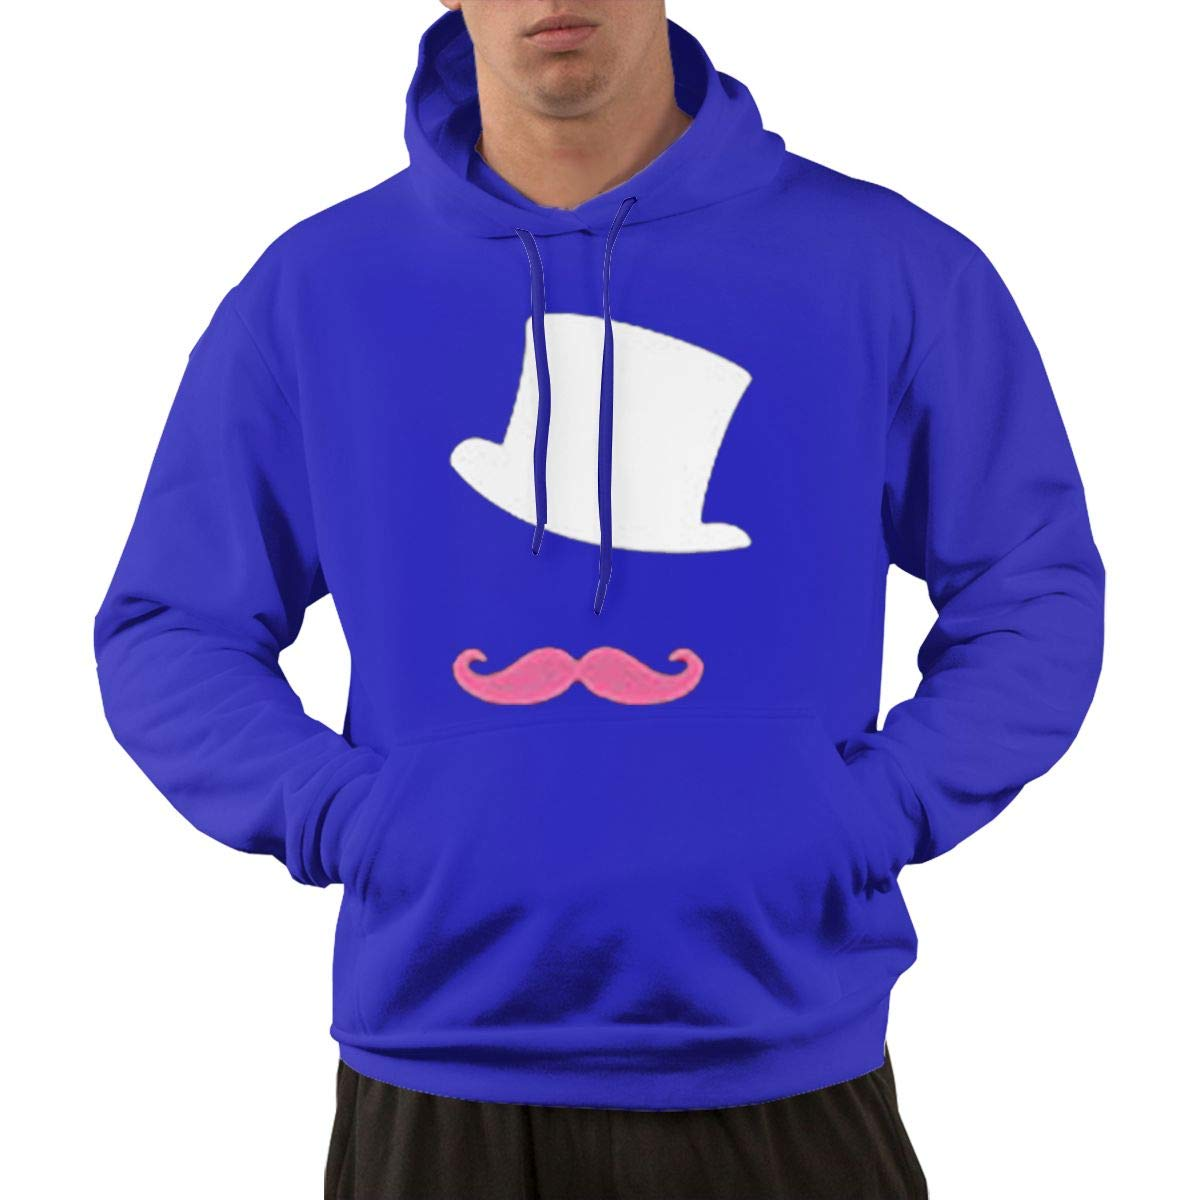 DingingGOOD Hoodies for Men Walk Men's Markiplier White Hat and Pink Moustache Hoodie with Pockets by DingingGOOD